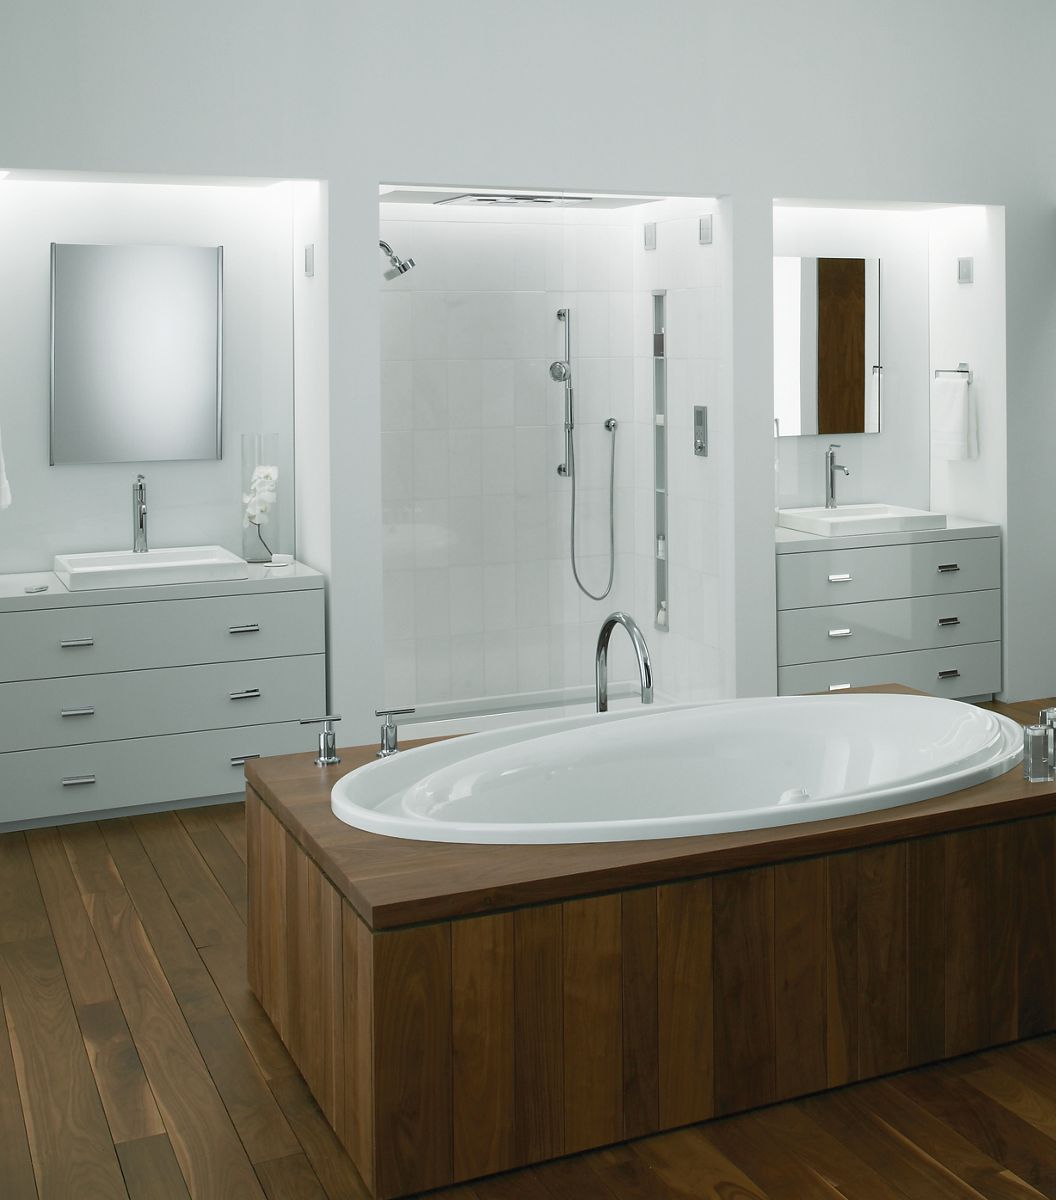 bathroom accessories lebanon